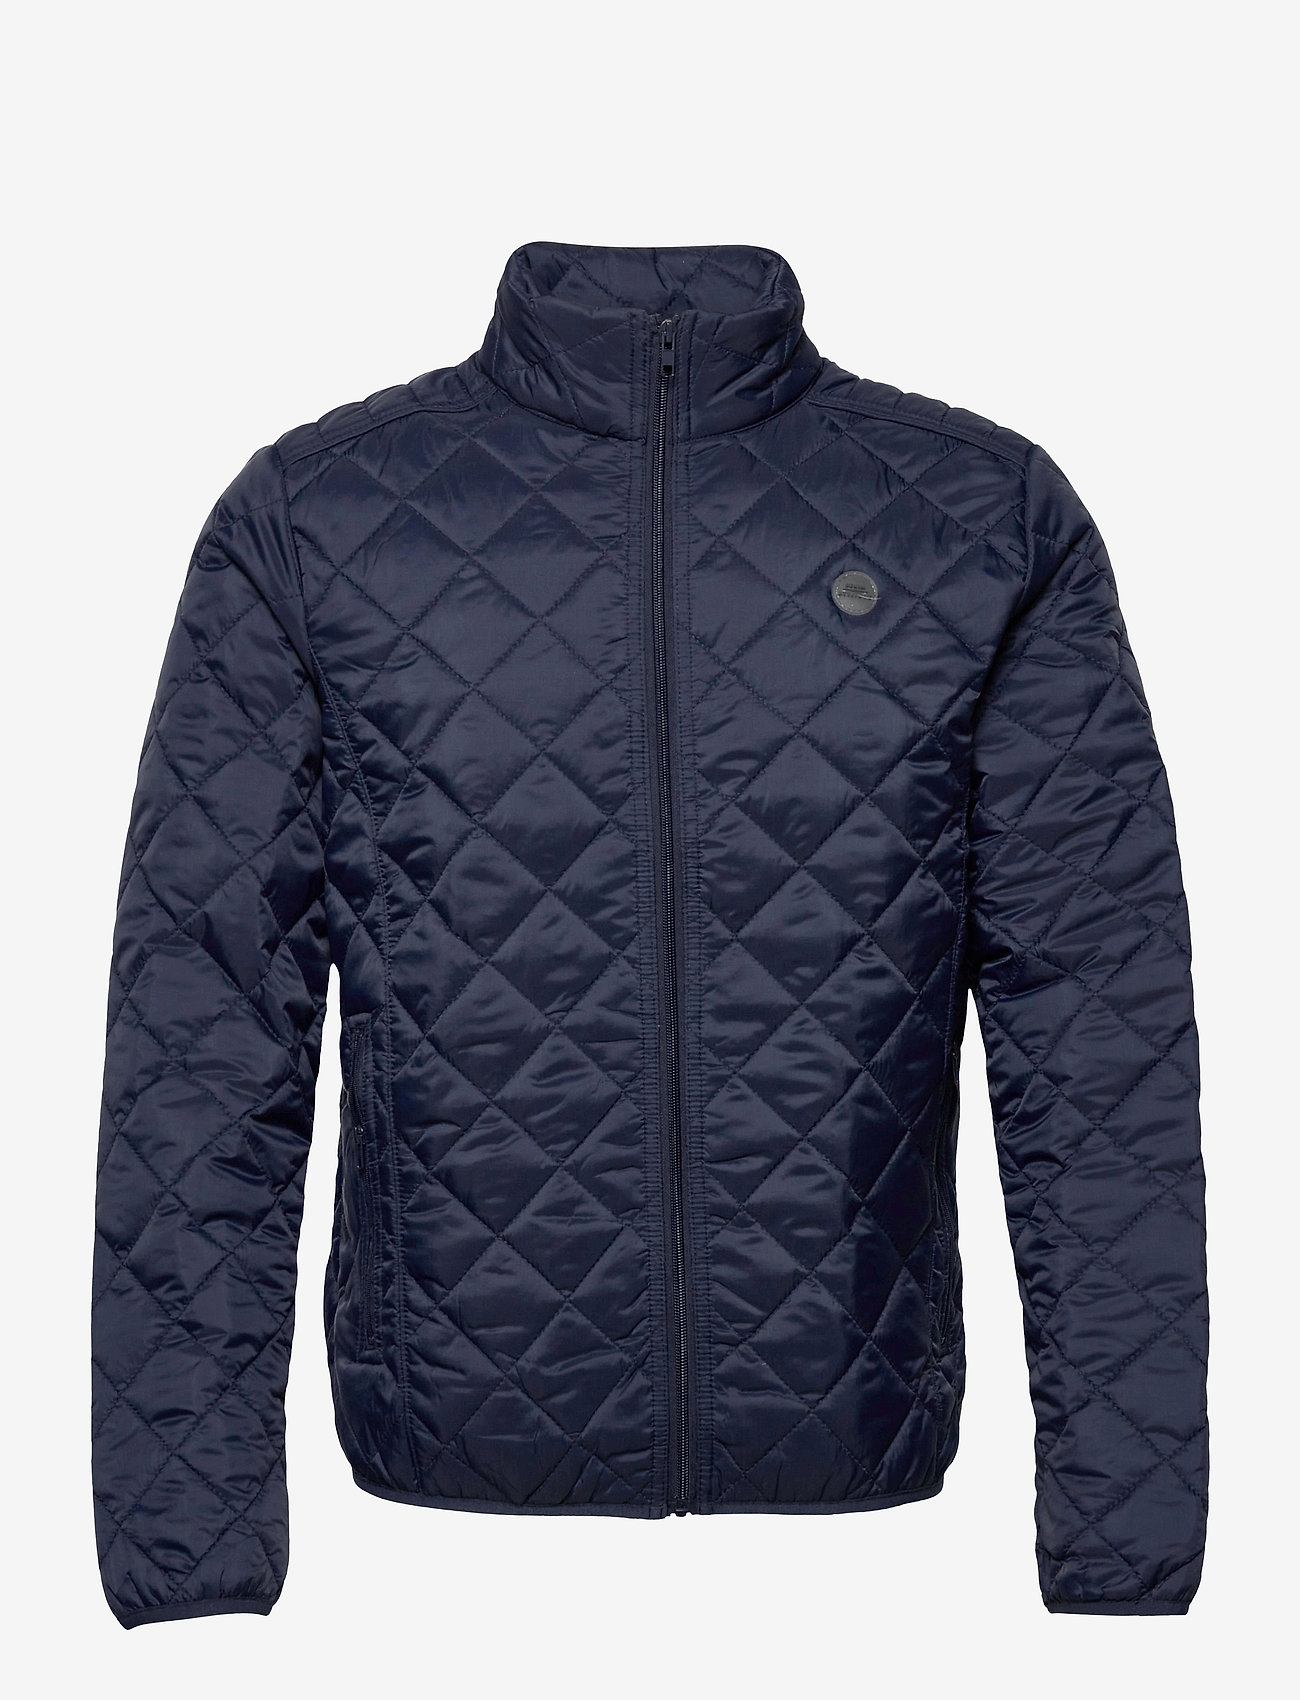 Blend - Outerwear - quilted jackets - dress blues - 0